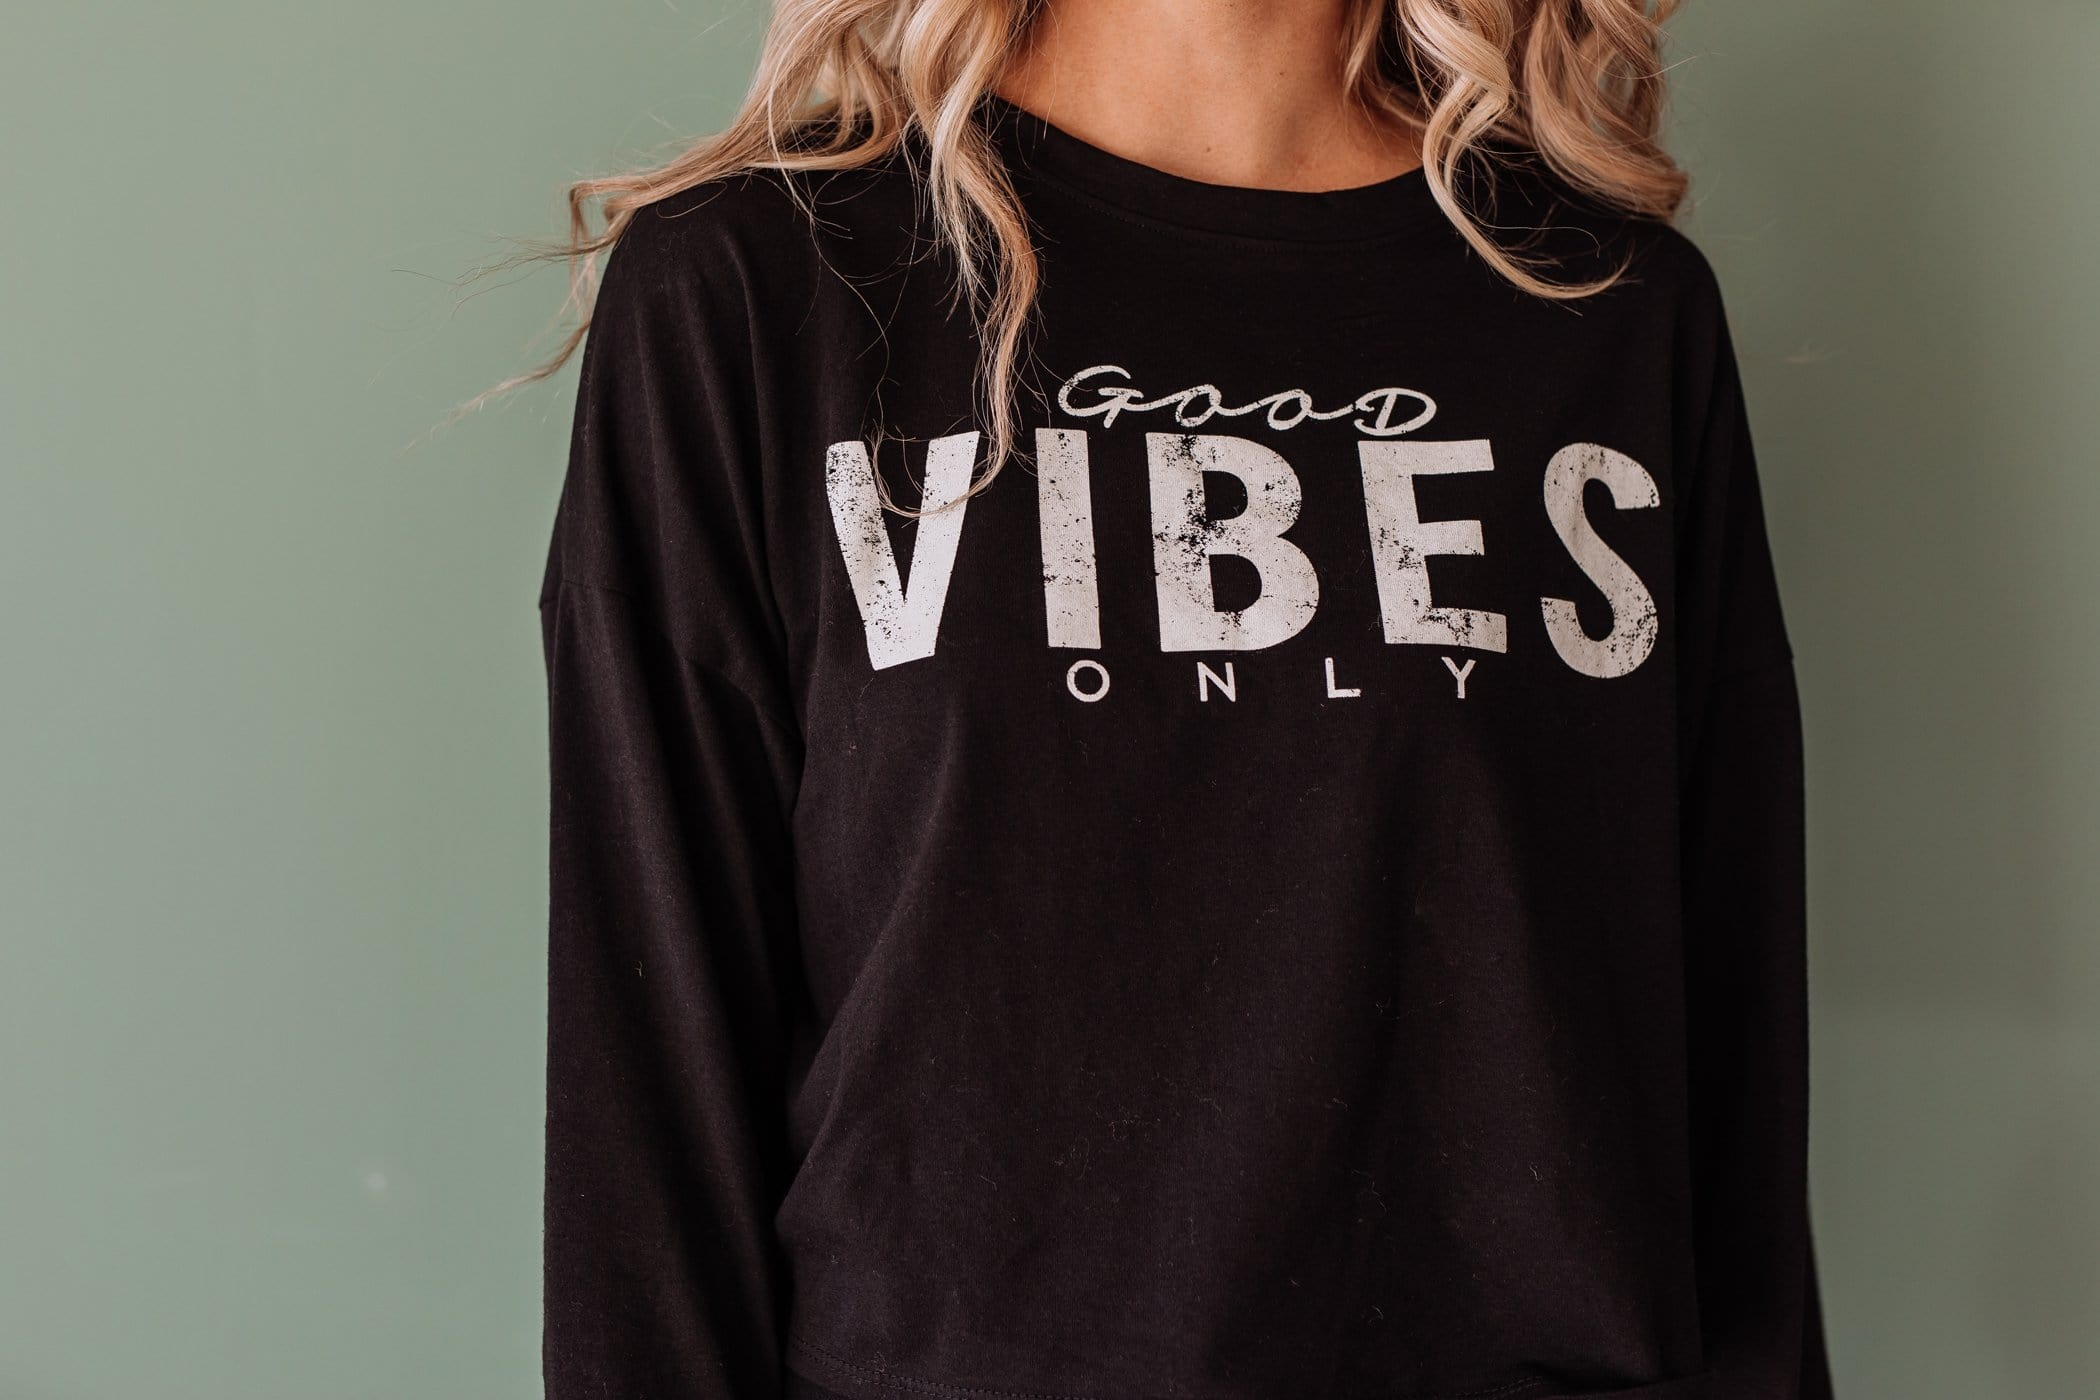 The Good Vibes Only Top in Black